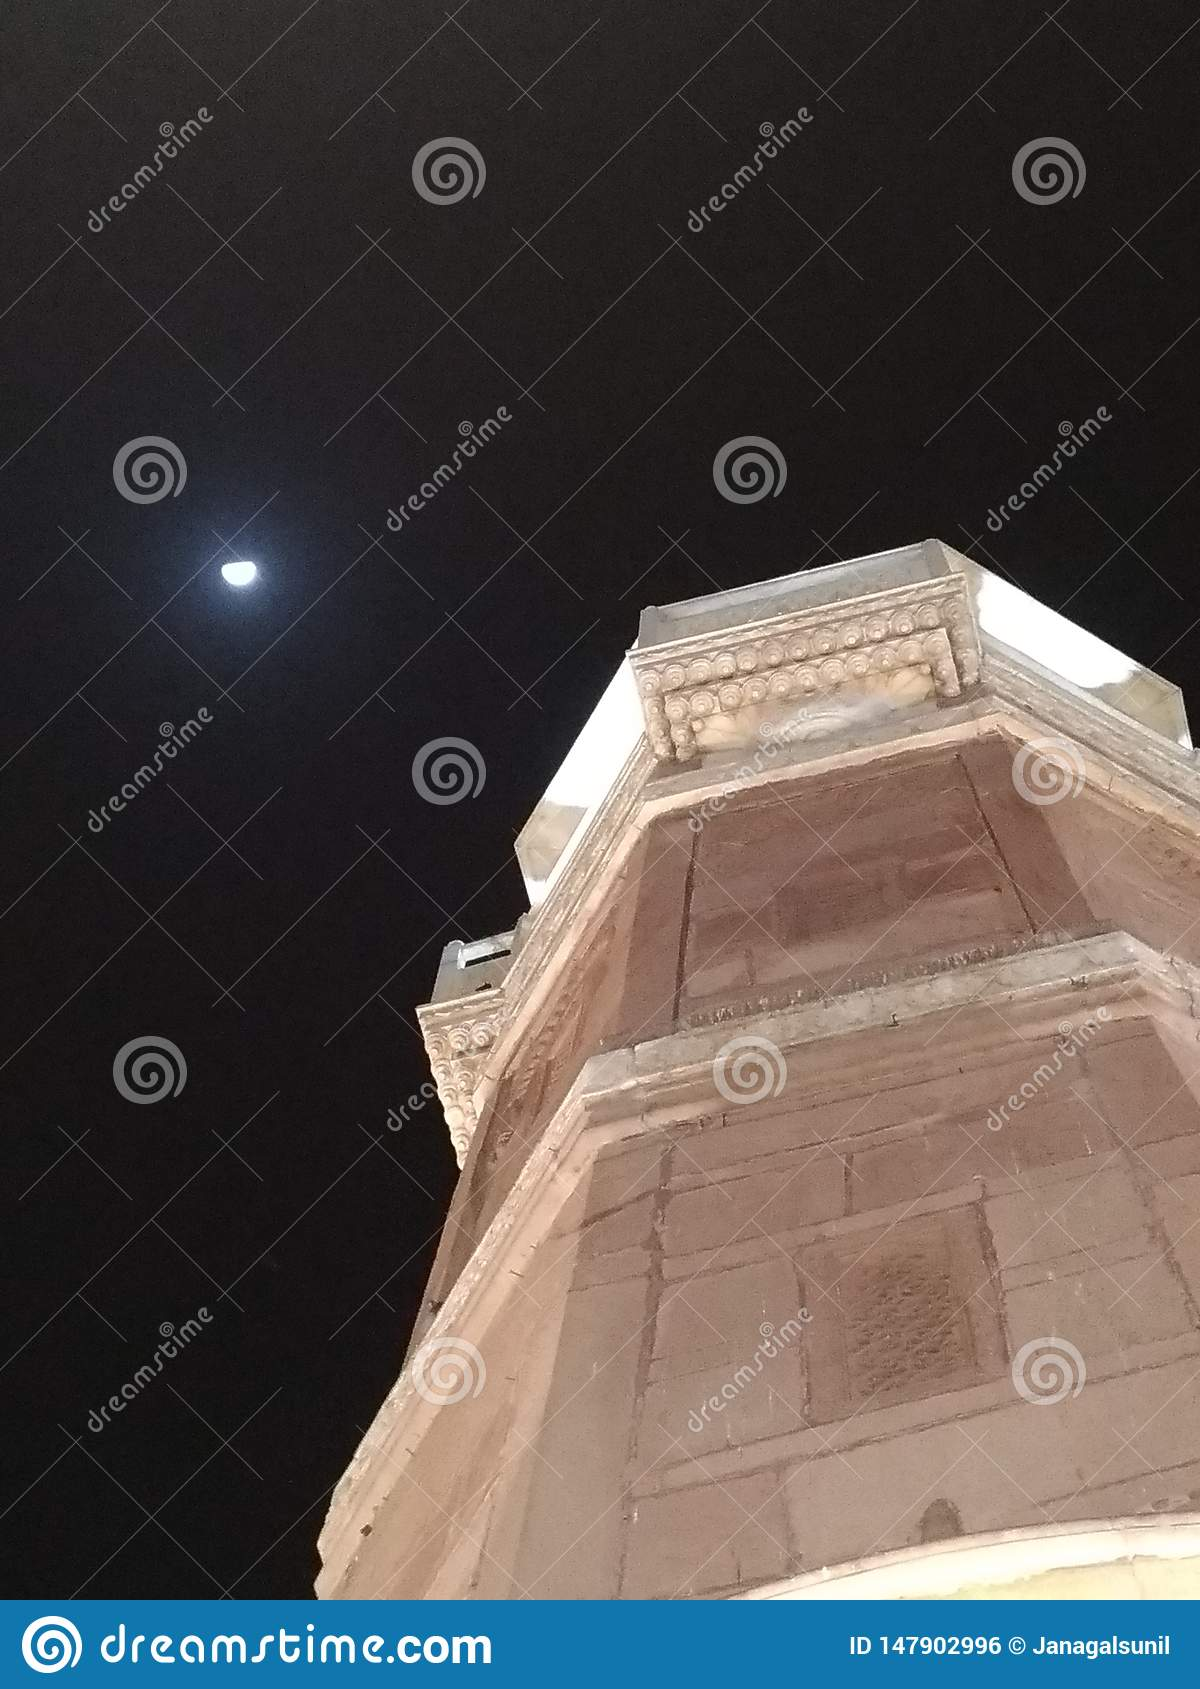 the pillar of victorious with shy moon at night sky